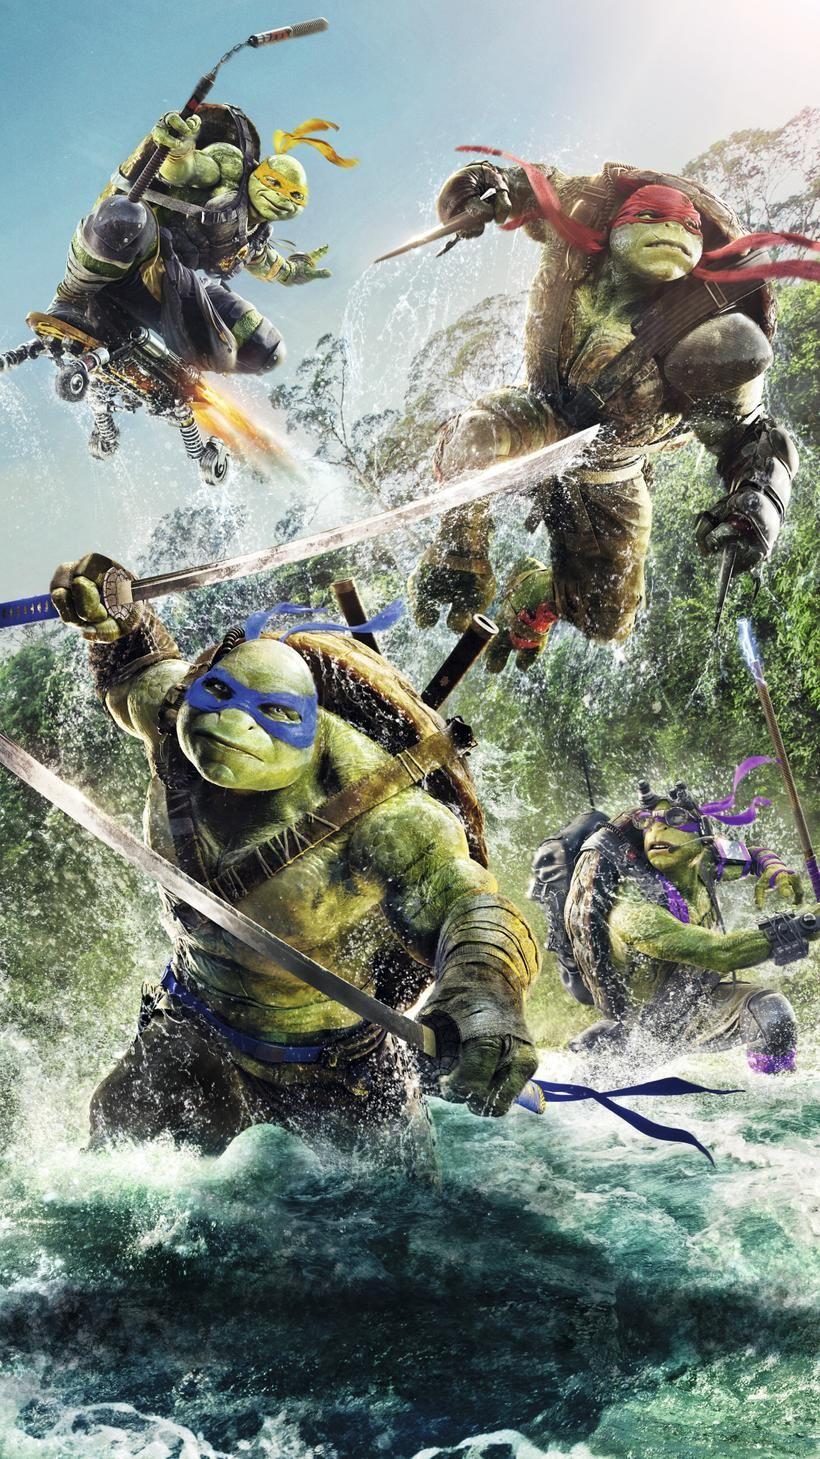 2014 *** Leo Leonardo COMPLET *** Teenage Mutant Ninja Turtles film